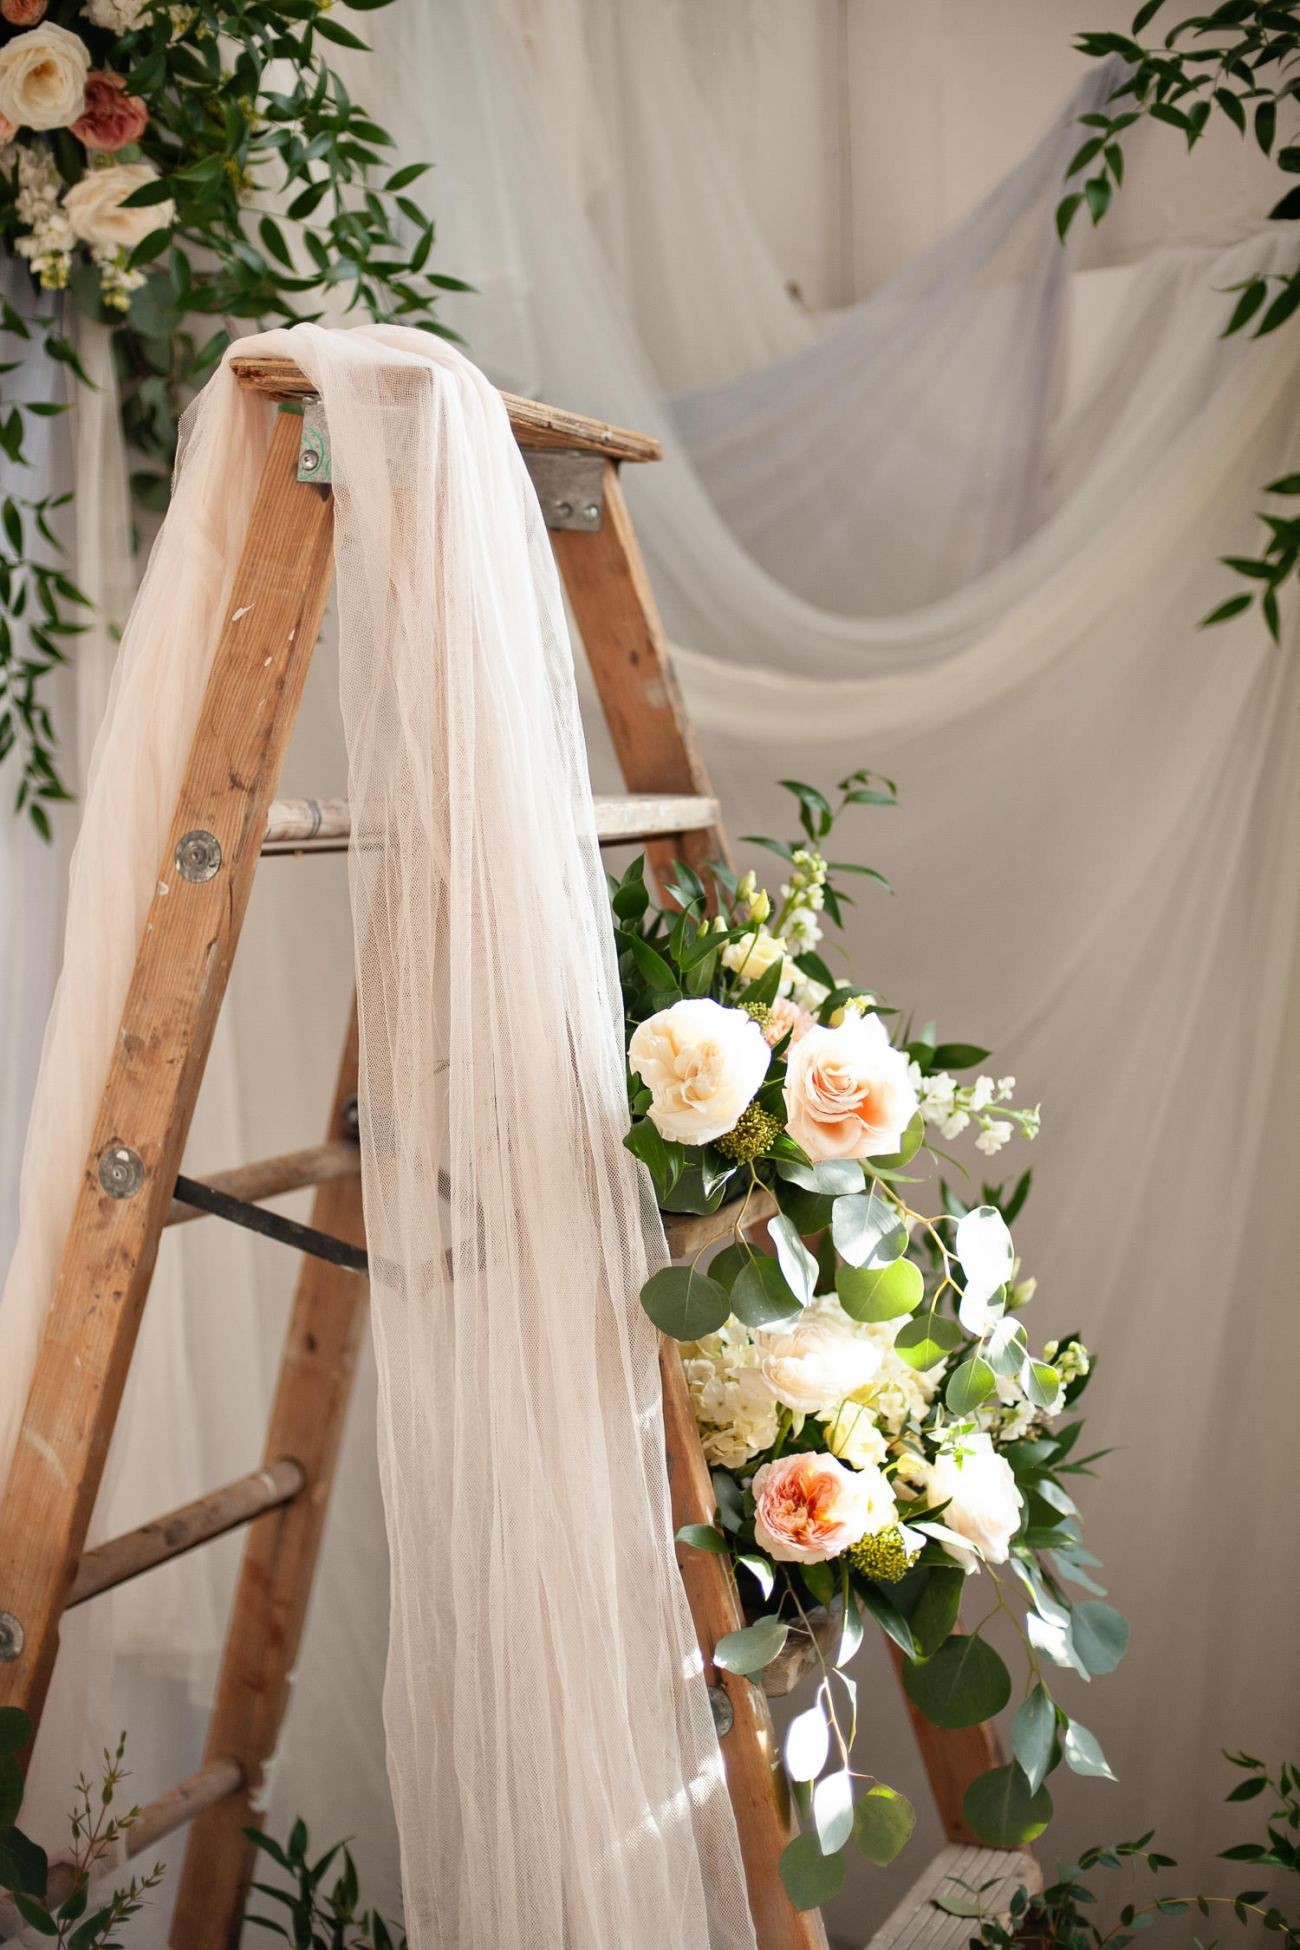 vintage ladder draped with textiles captured by Tara Whittaker Photography